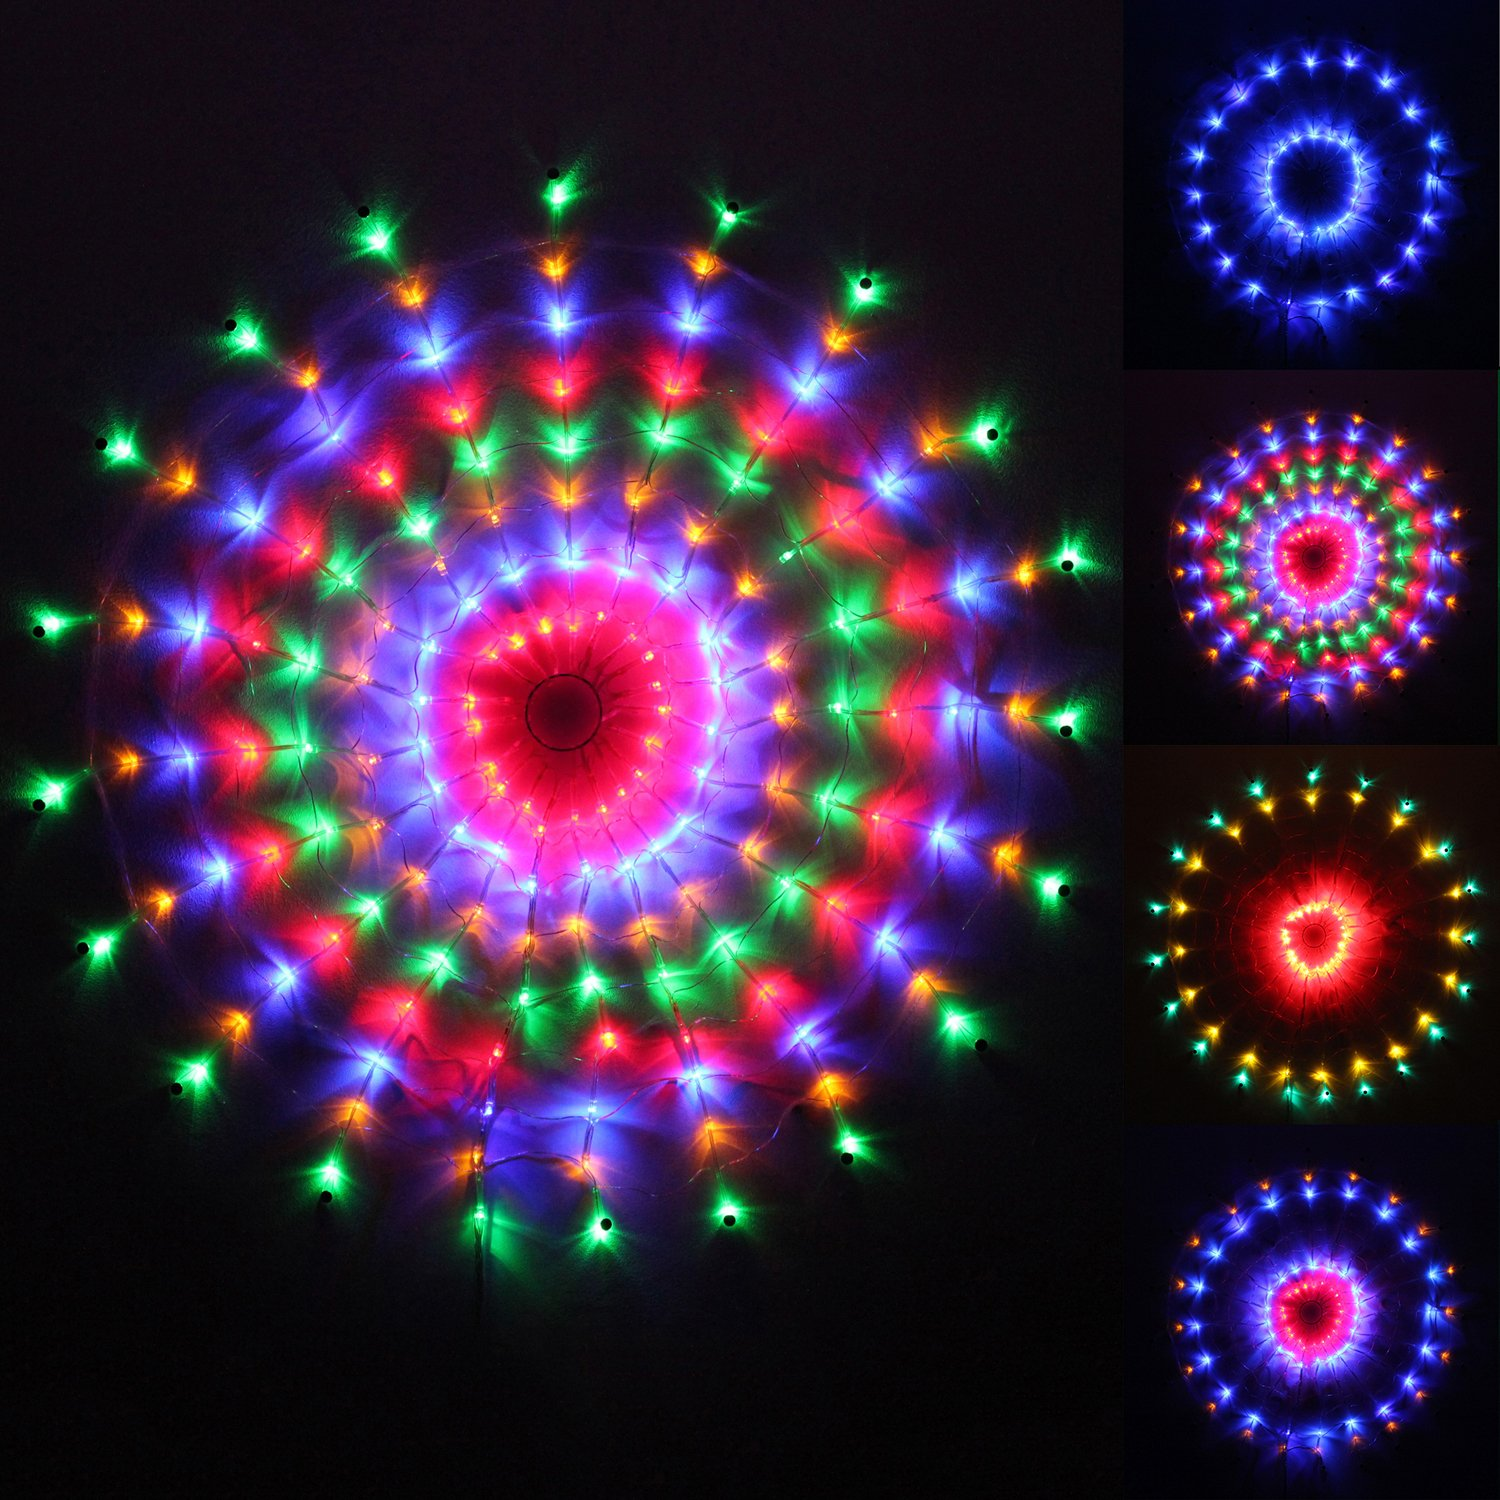 160 multi colour led chasing circular web window curtain net christmas lights suitable for indooroutdoor size 70cm amazoncouk kitchen home